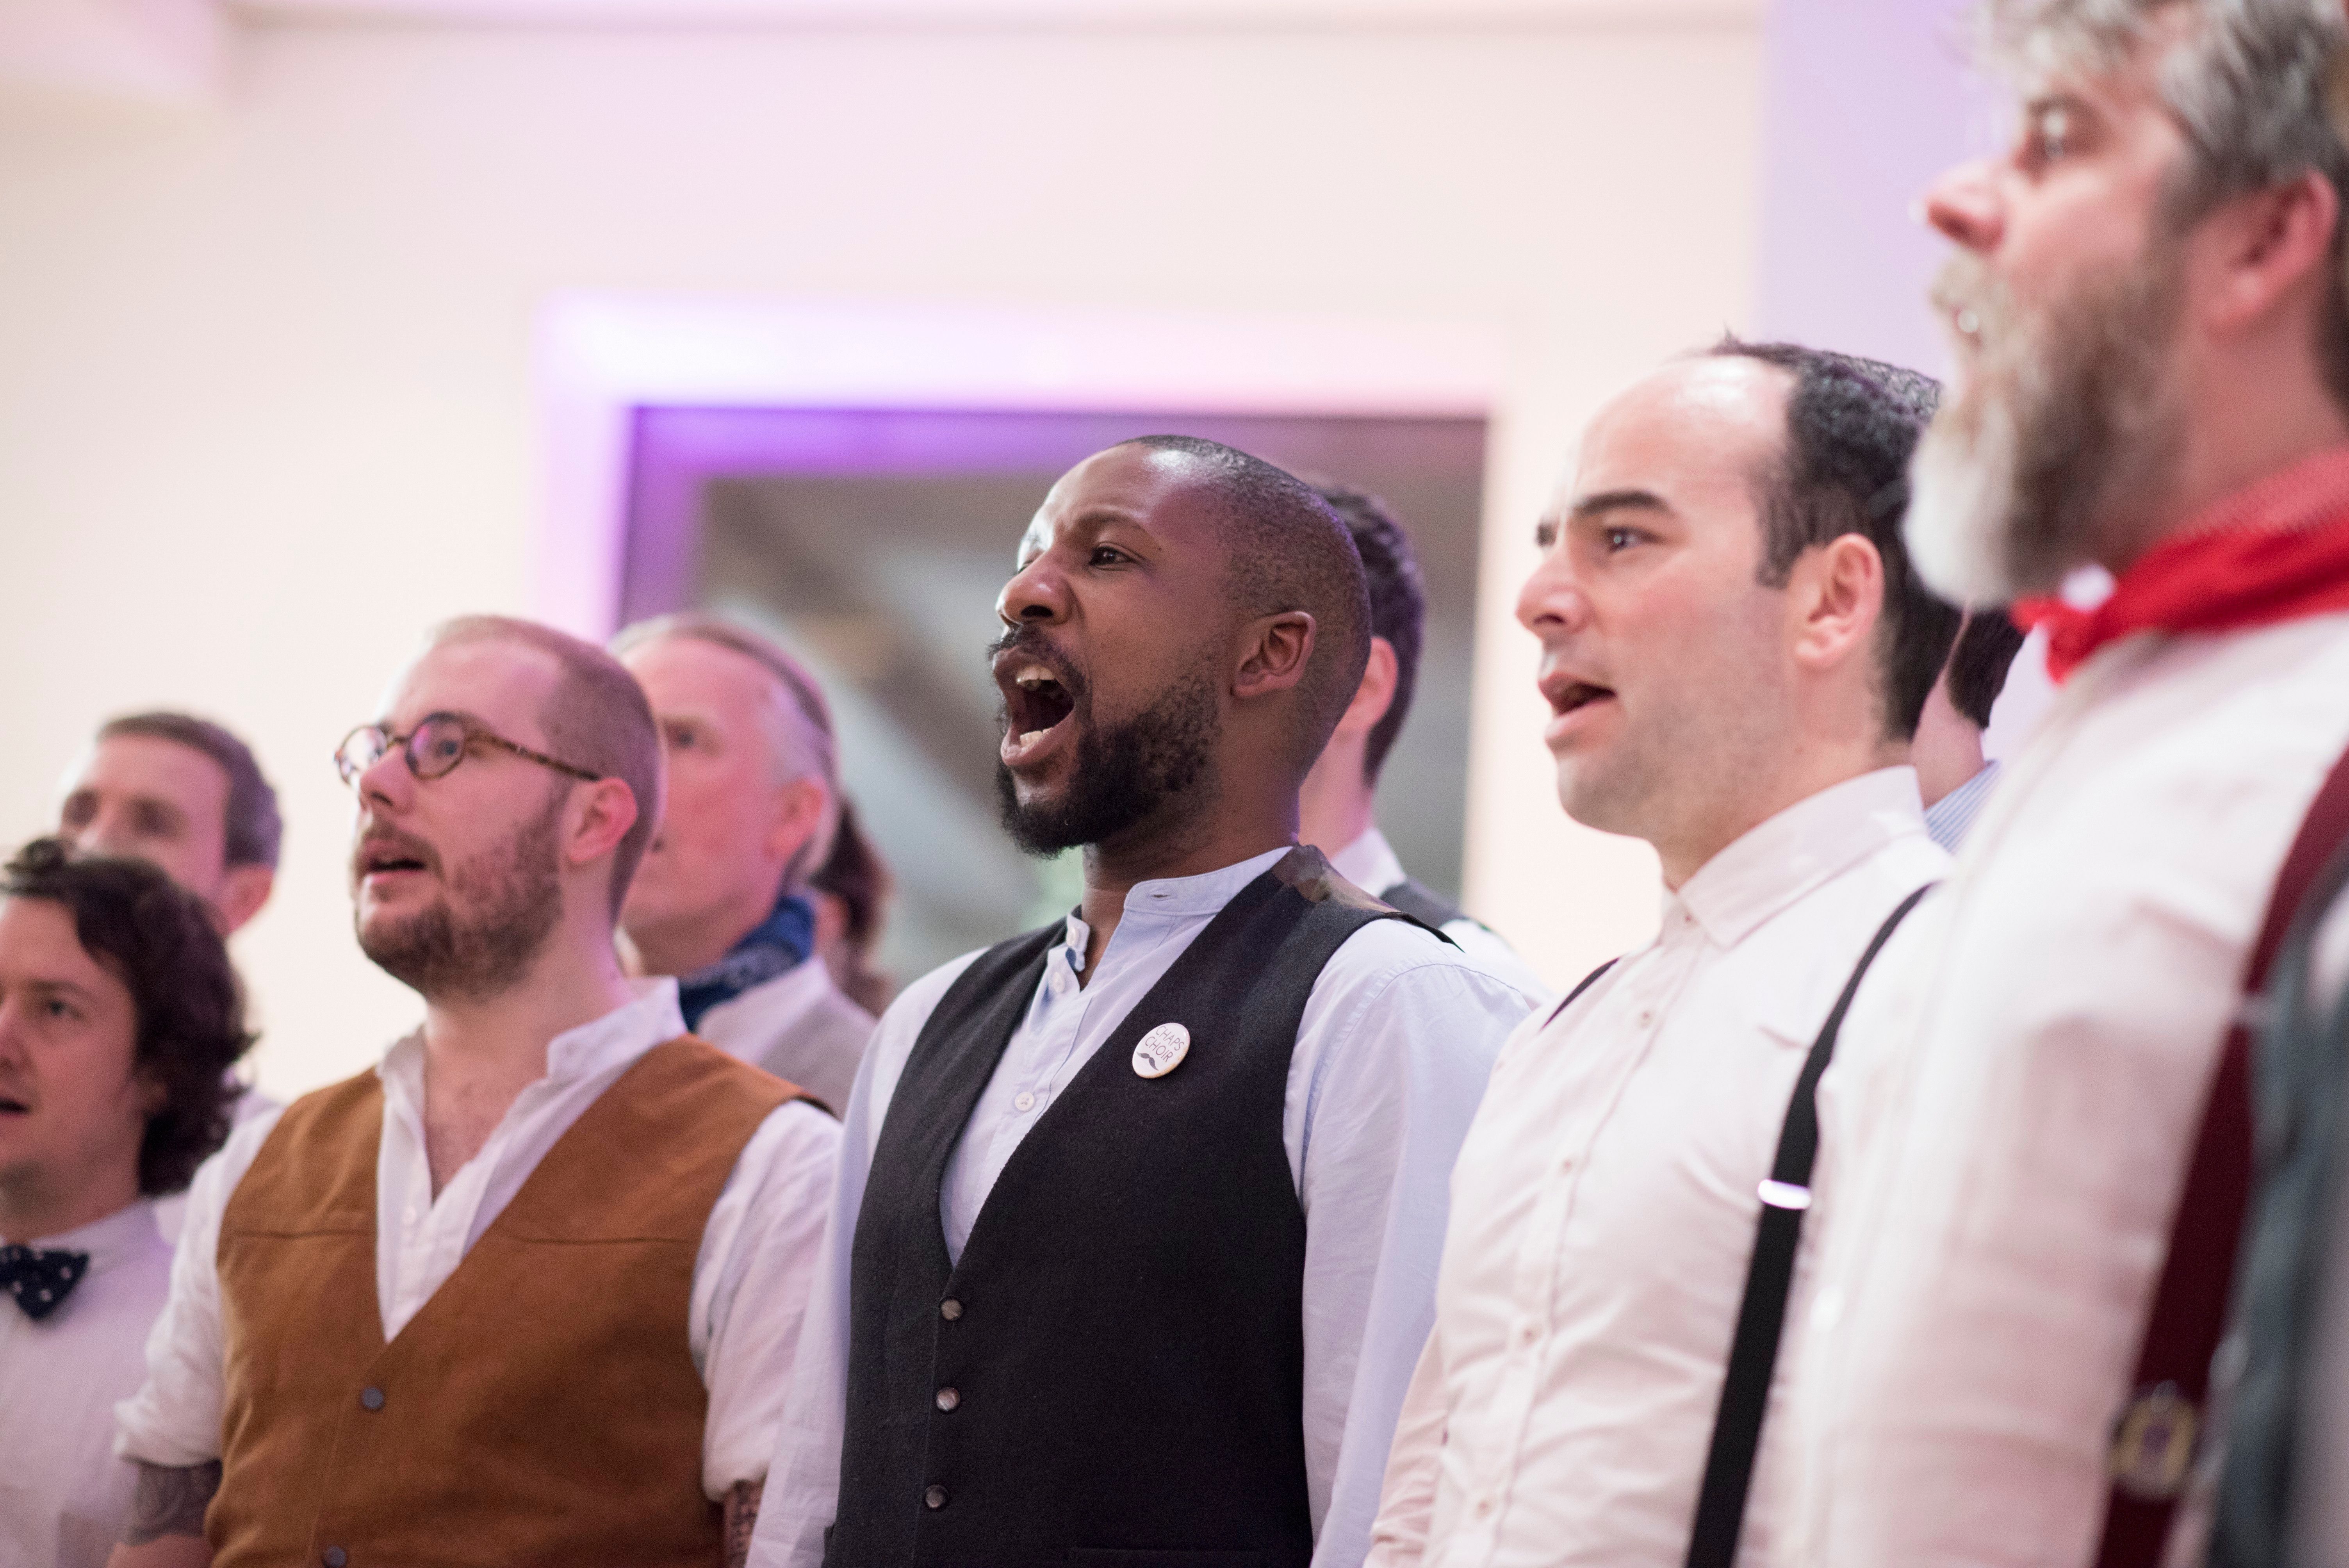 Singing workshops for men by Chaps Choir & Bellow Fellows